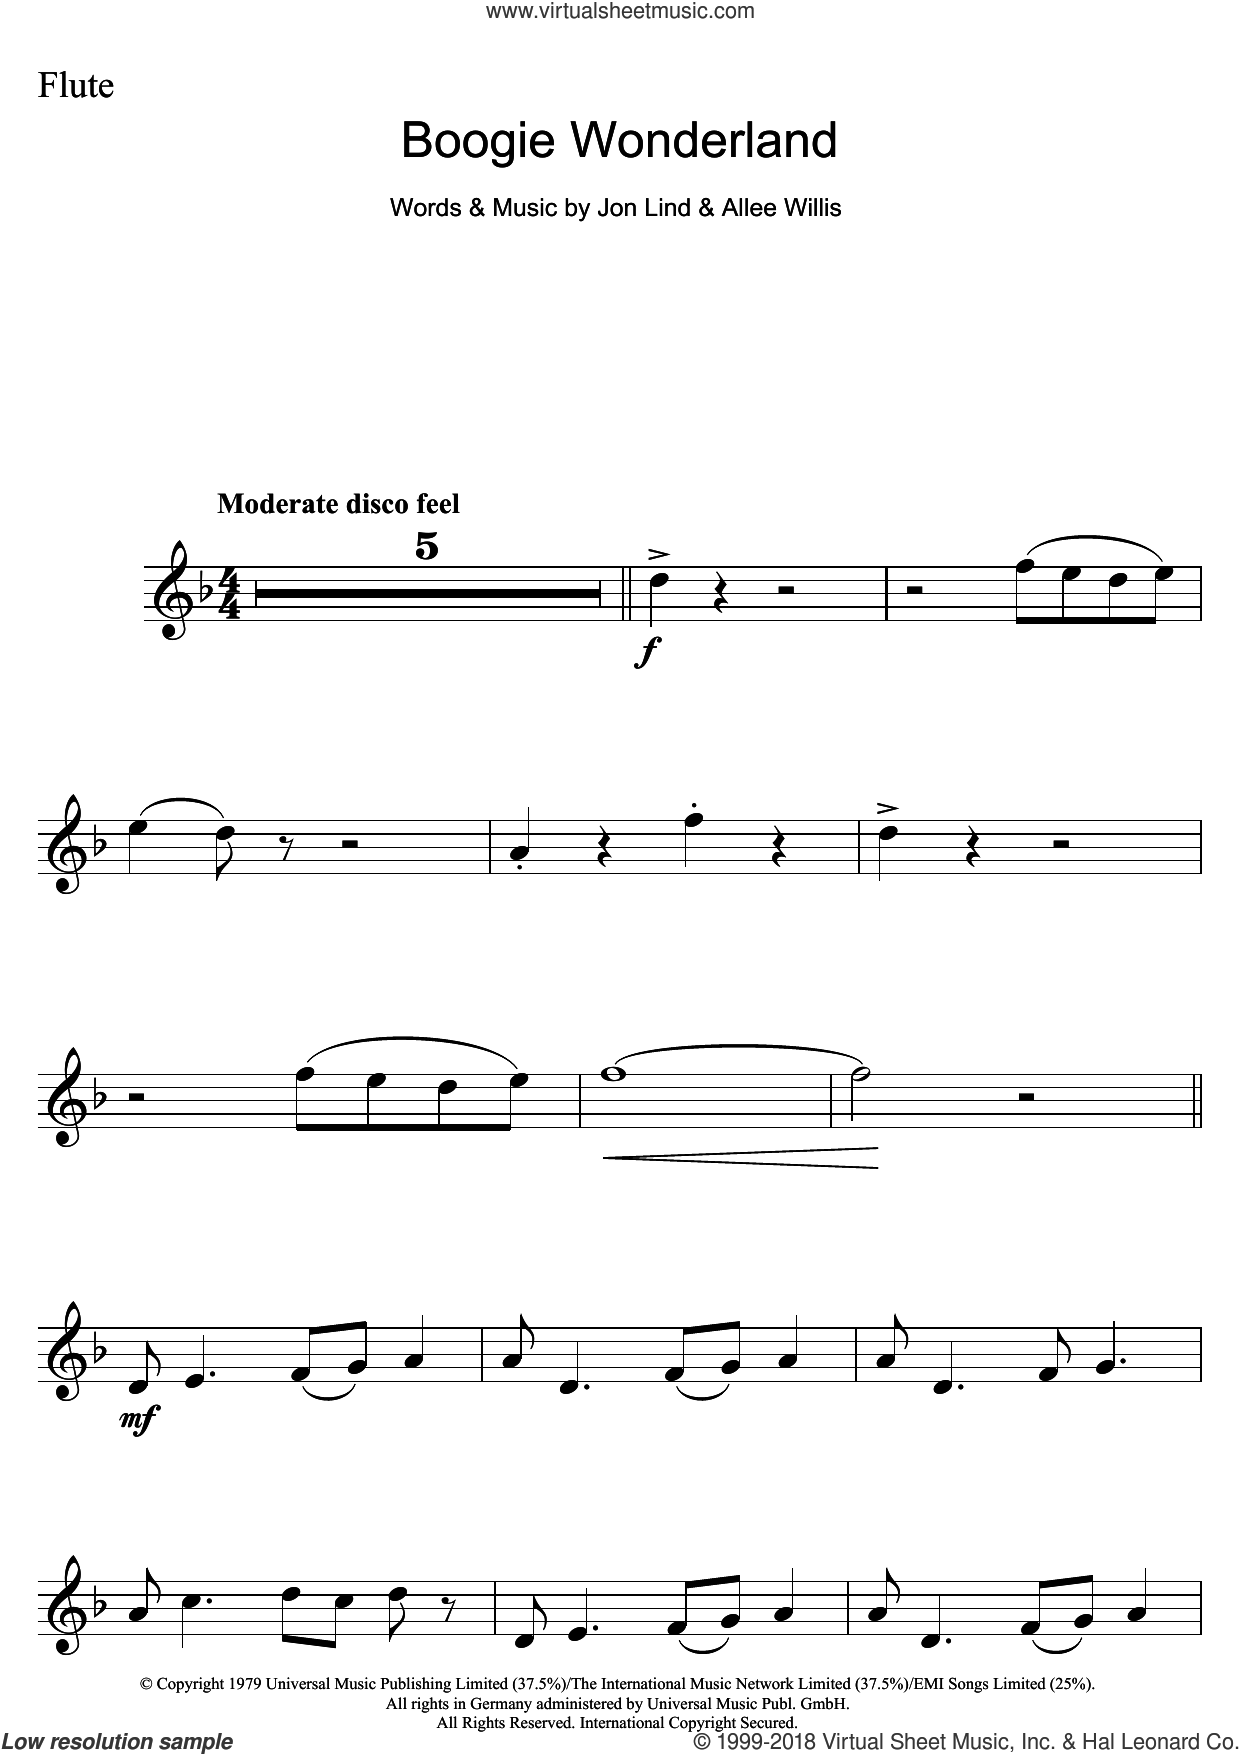 Boogie Wonderland sheet music for flute solo by Earth, Wind & Fire, Allee Willis and Jon Lind, intermediate skill level